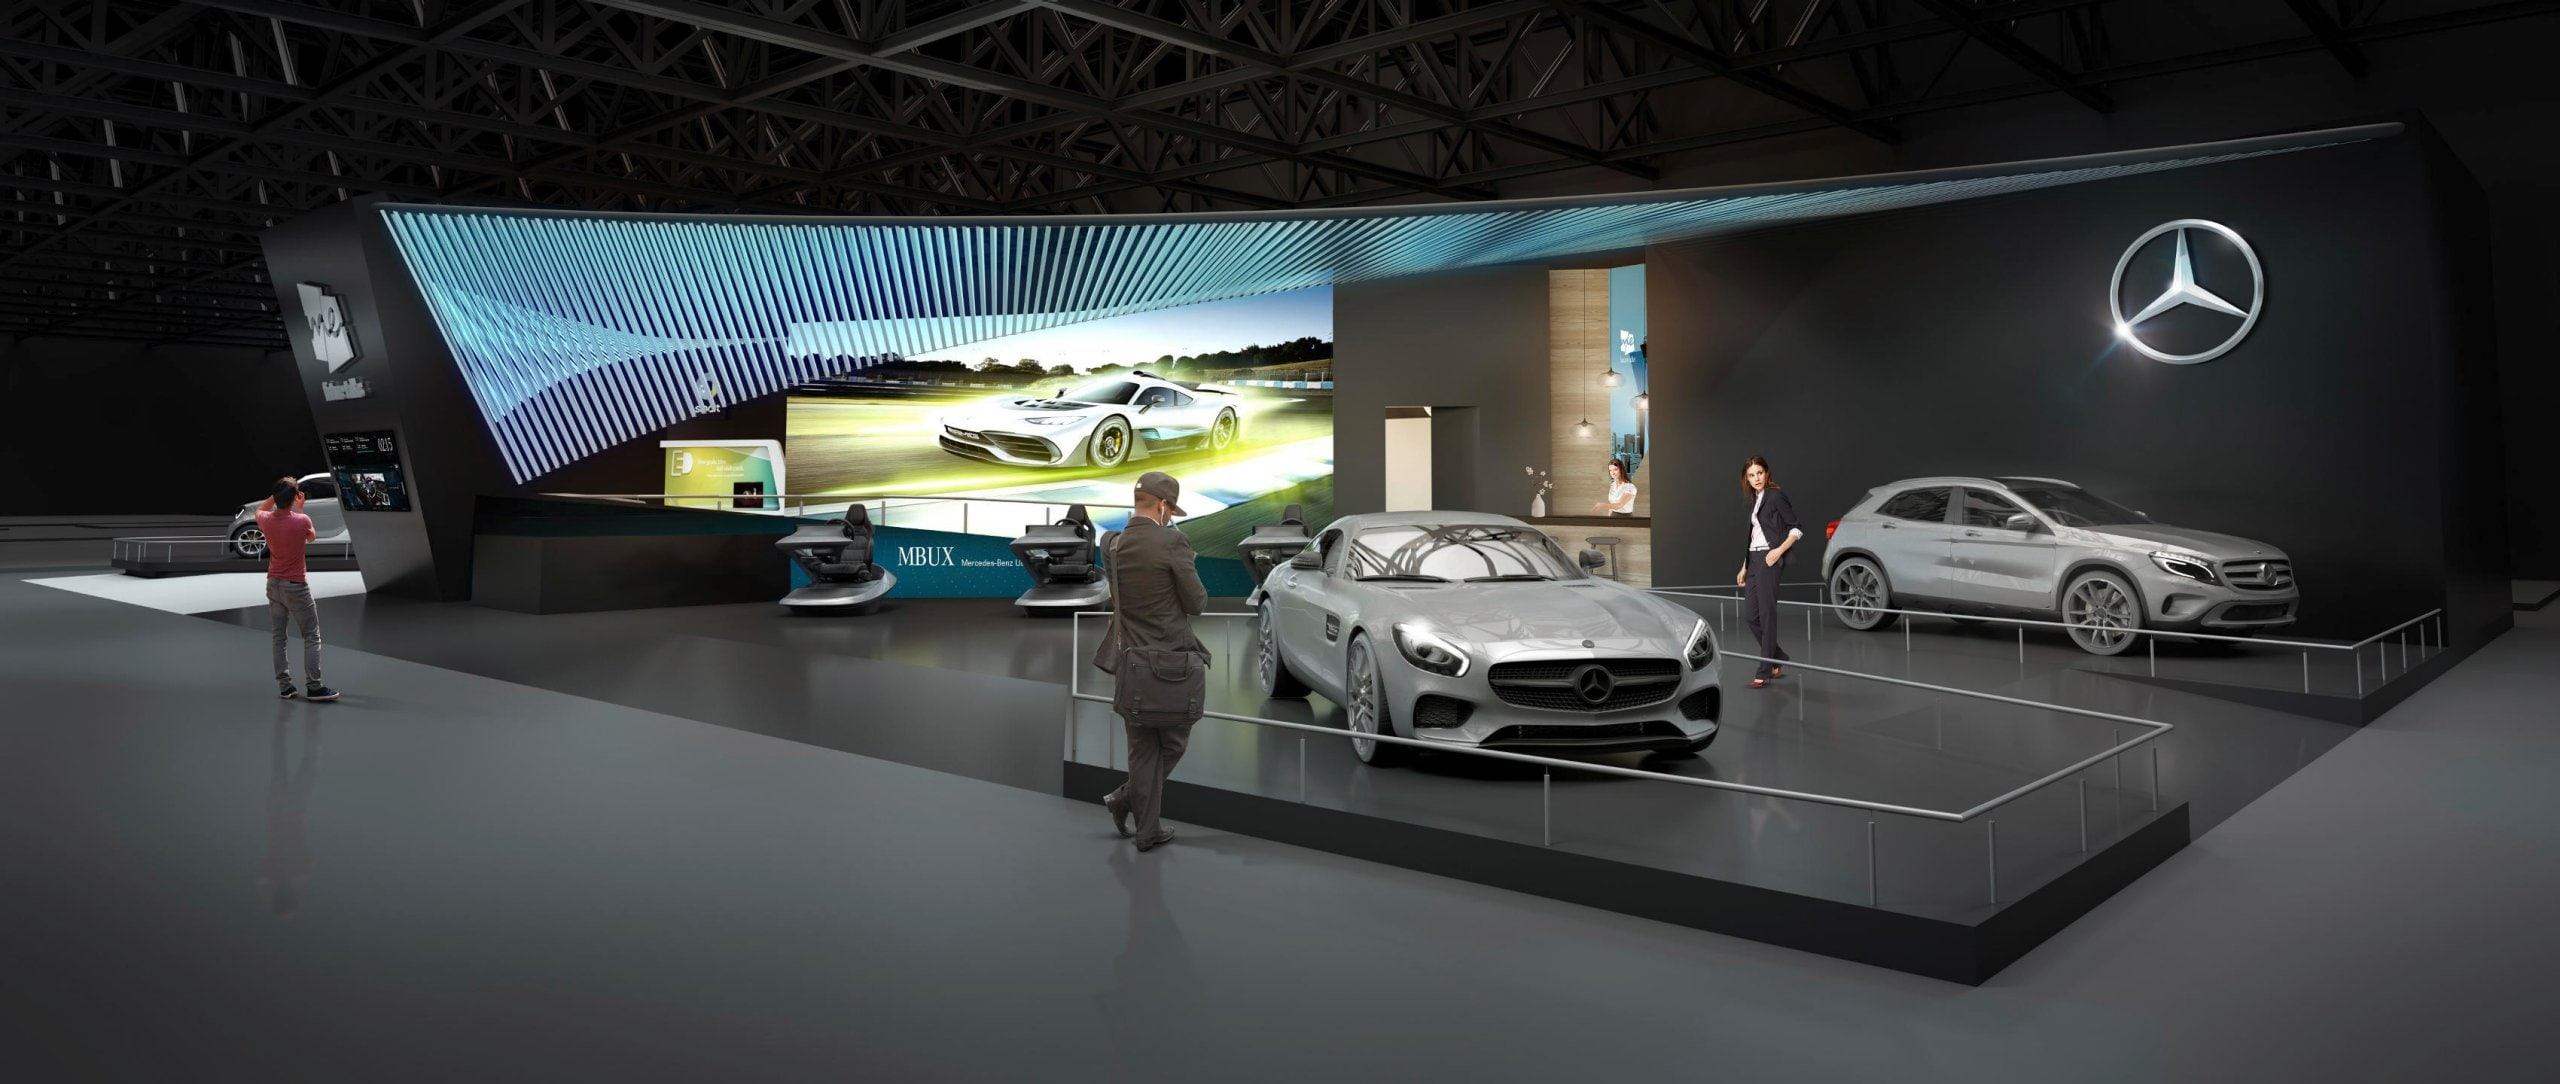 Mercedes-Benz CES 2018: World premiere of the new Mercedes-Benz User Experience.